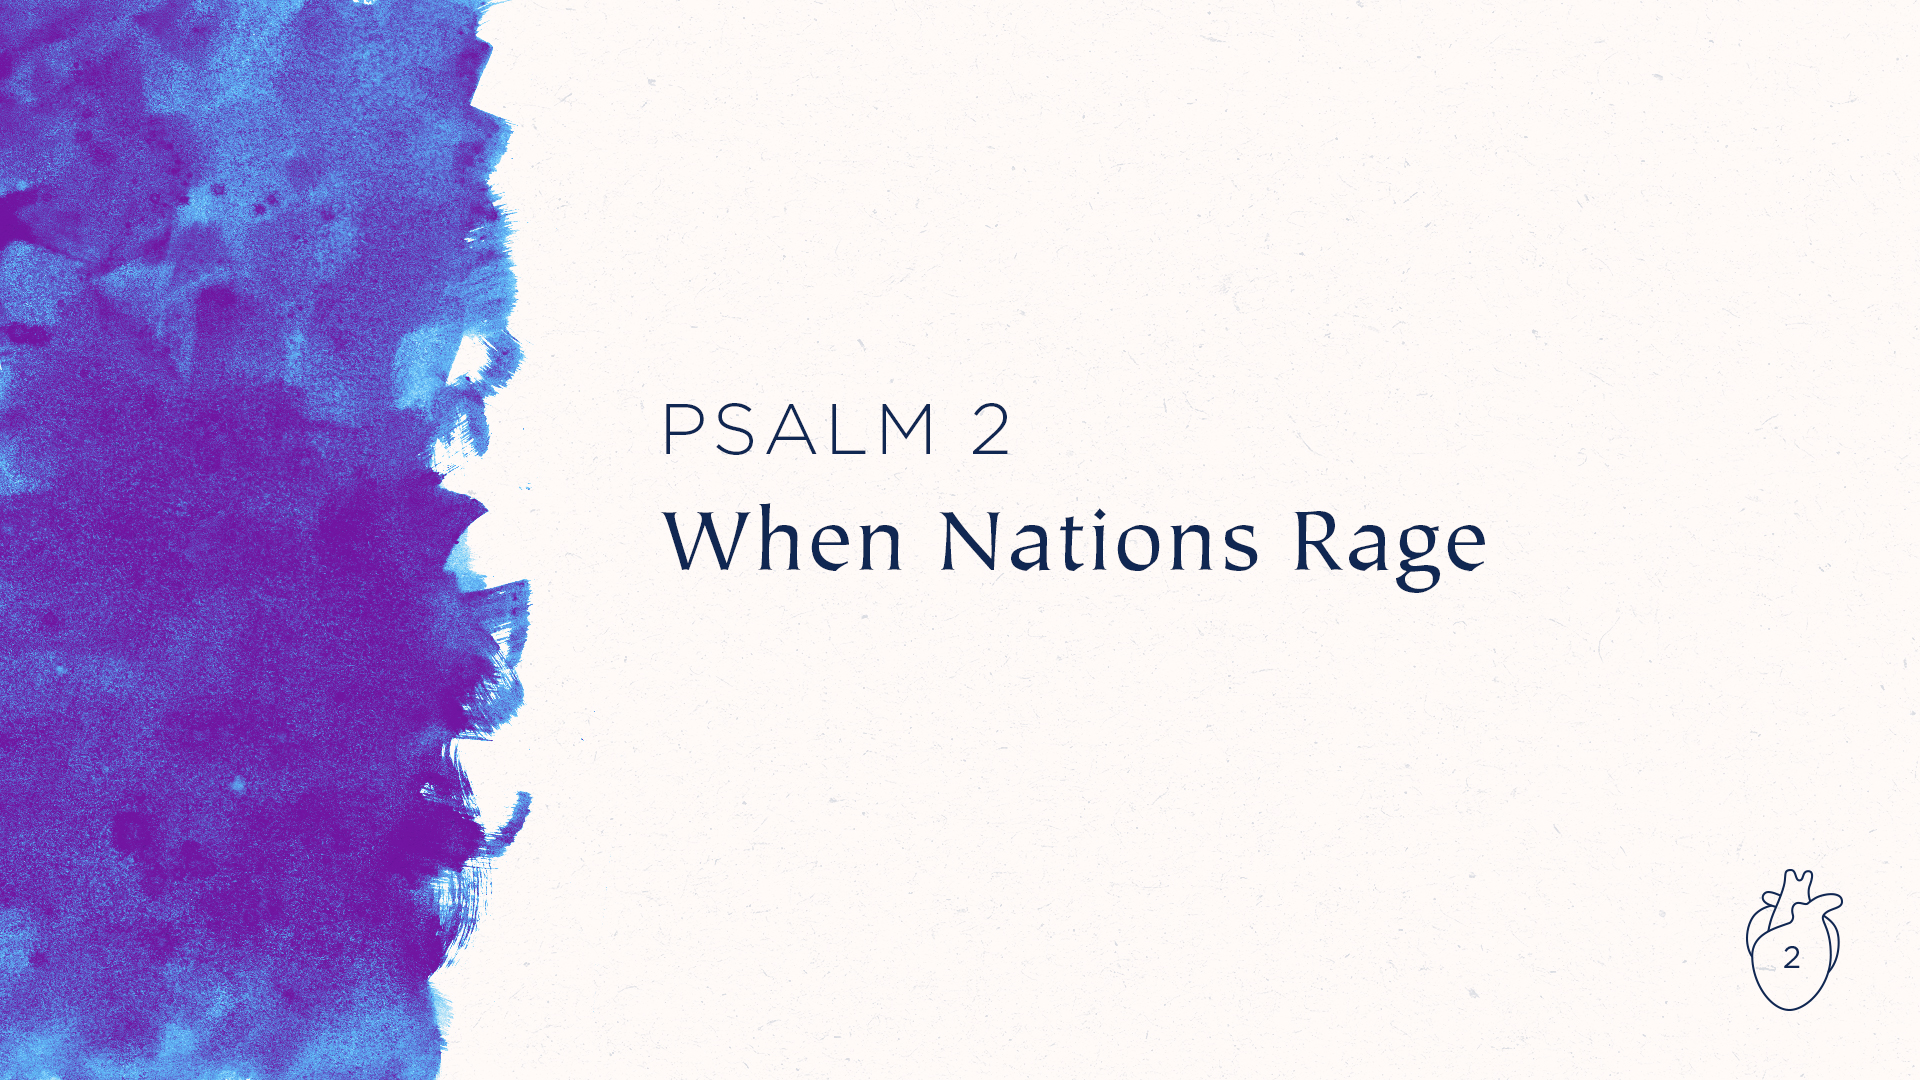 When Nations Rage